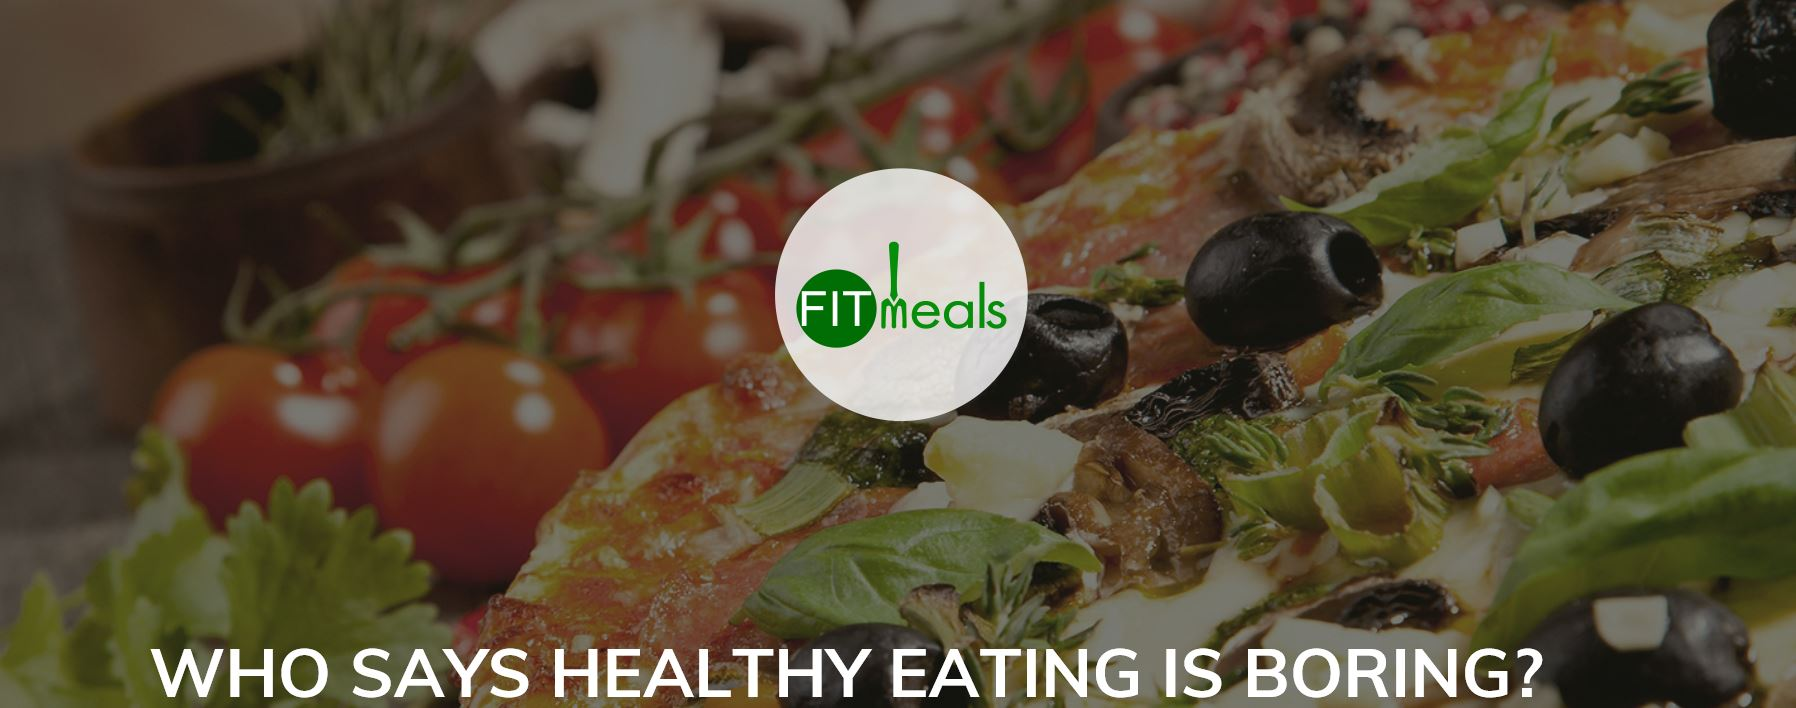 Fitmeals the healthy food delivery startup of the city start up with people relying more and more on fast food and quick services healthy bites are going for a toss now with health becoming a major concern for people forumfinder Choice Image